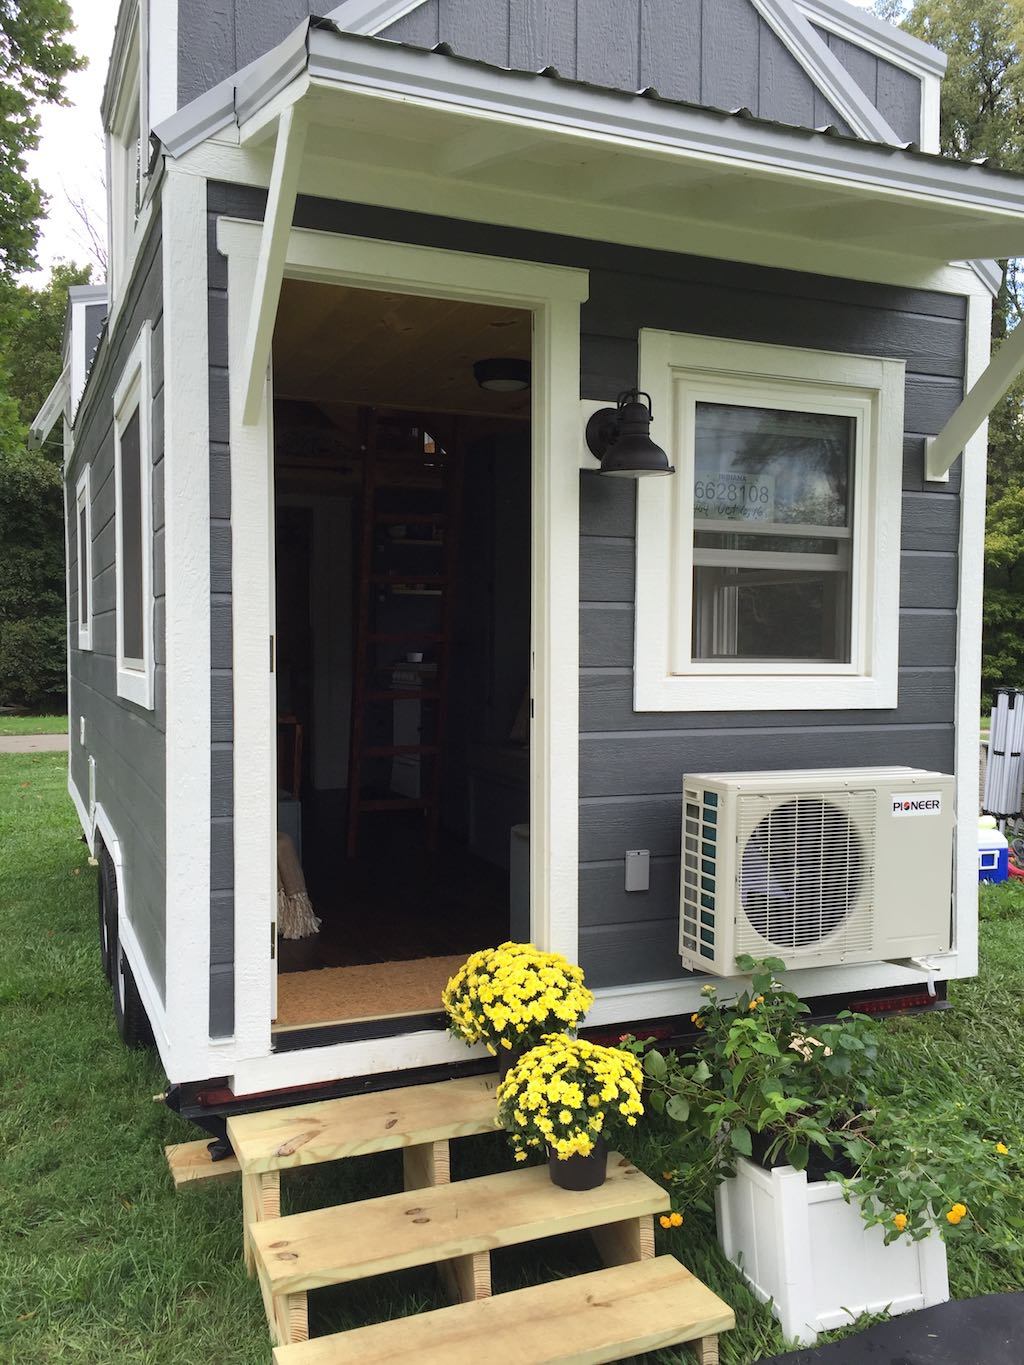 wanigan-burrow-tiny-homes-1